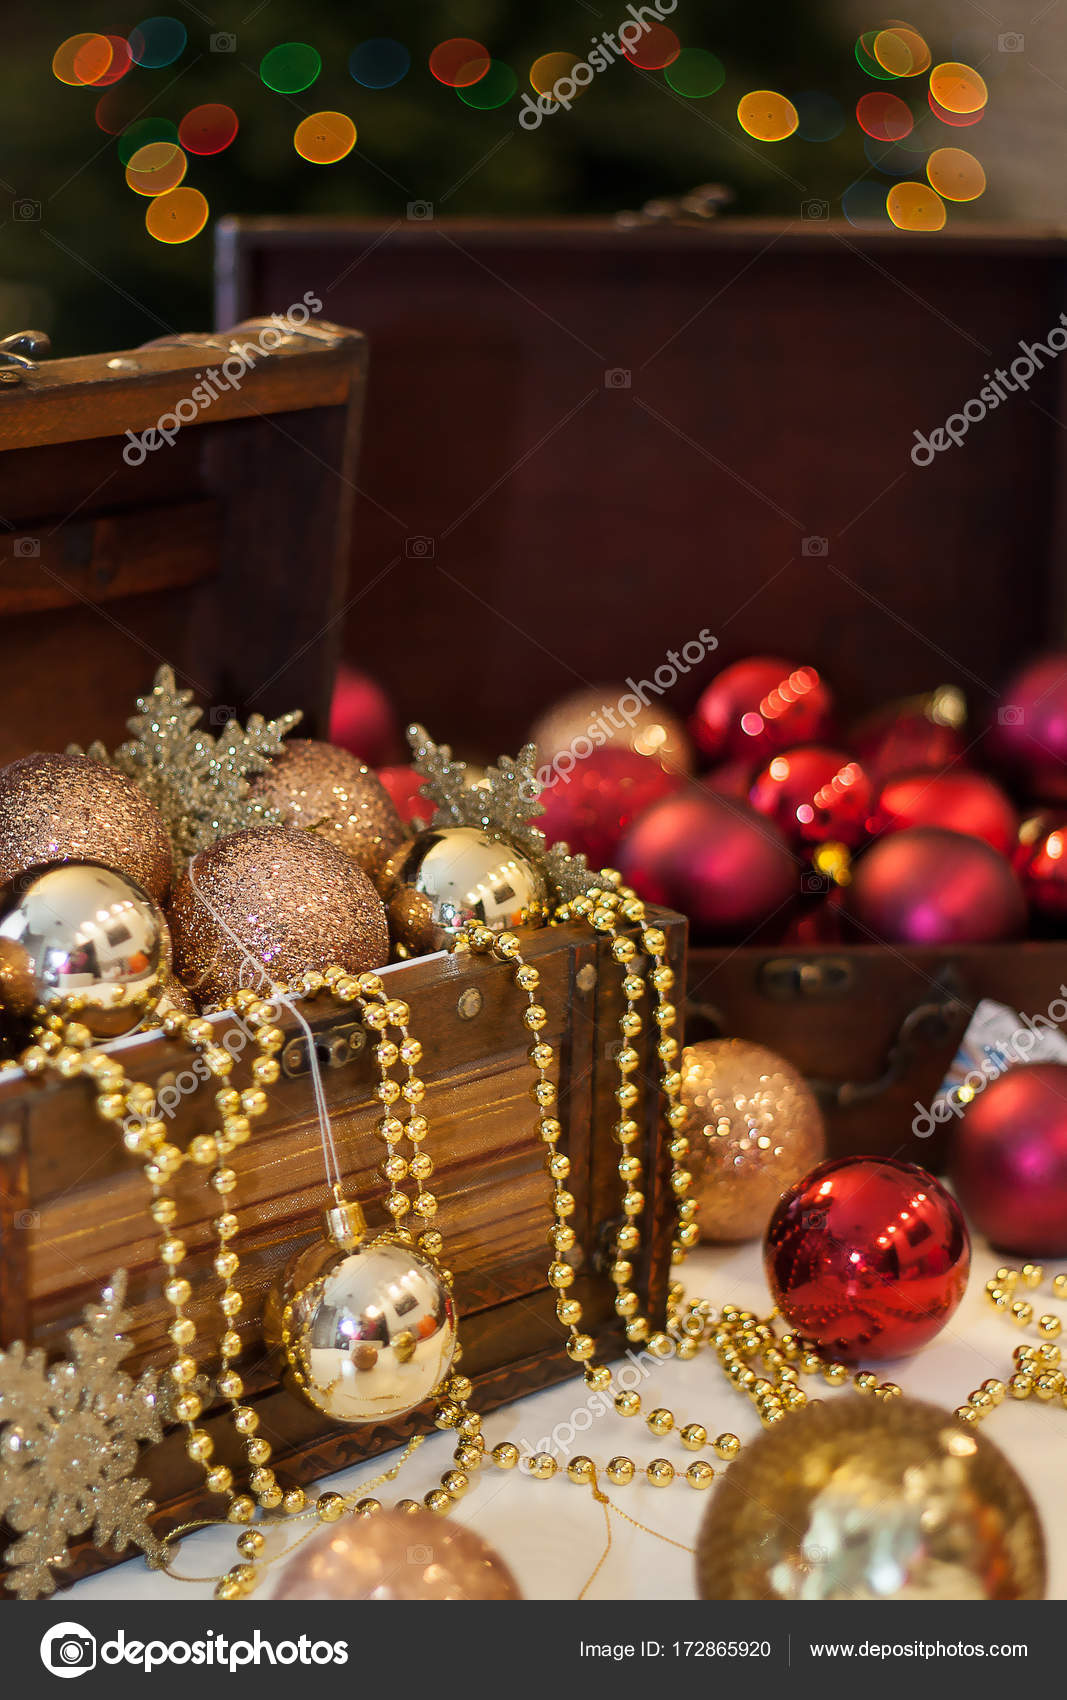 Beautiful Christmas Background Images.Very Beautiful Christmas Background Toys Decoration Stock